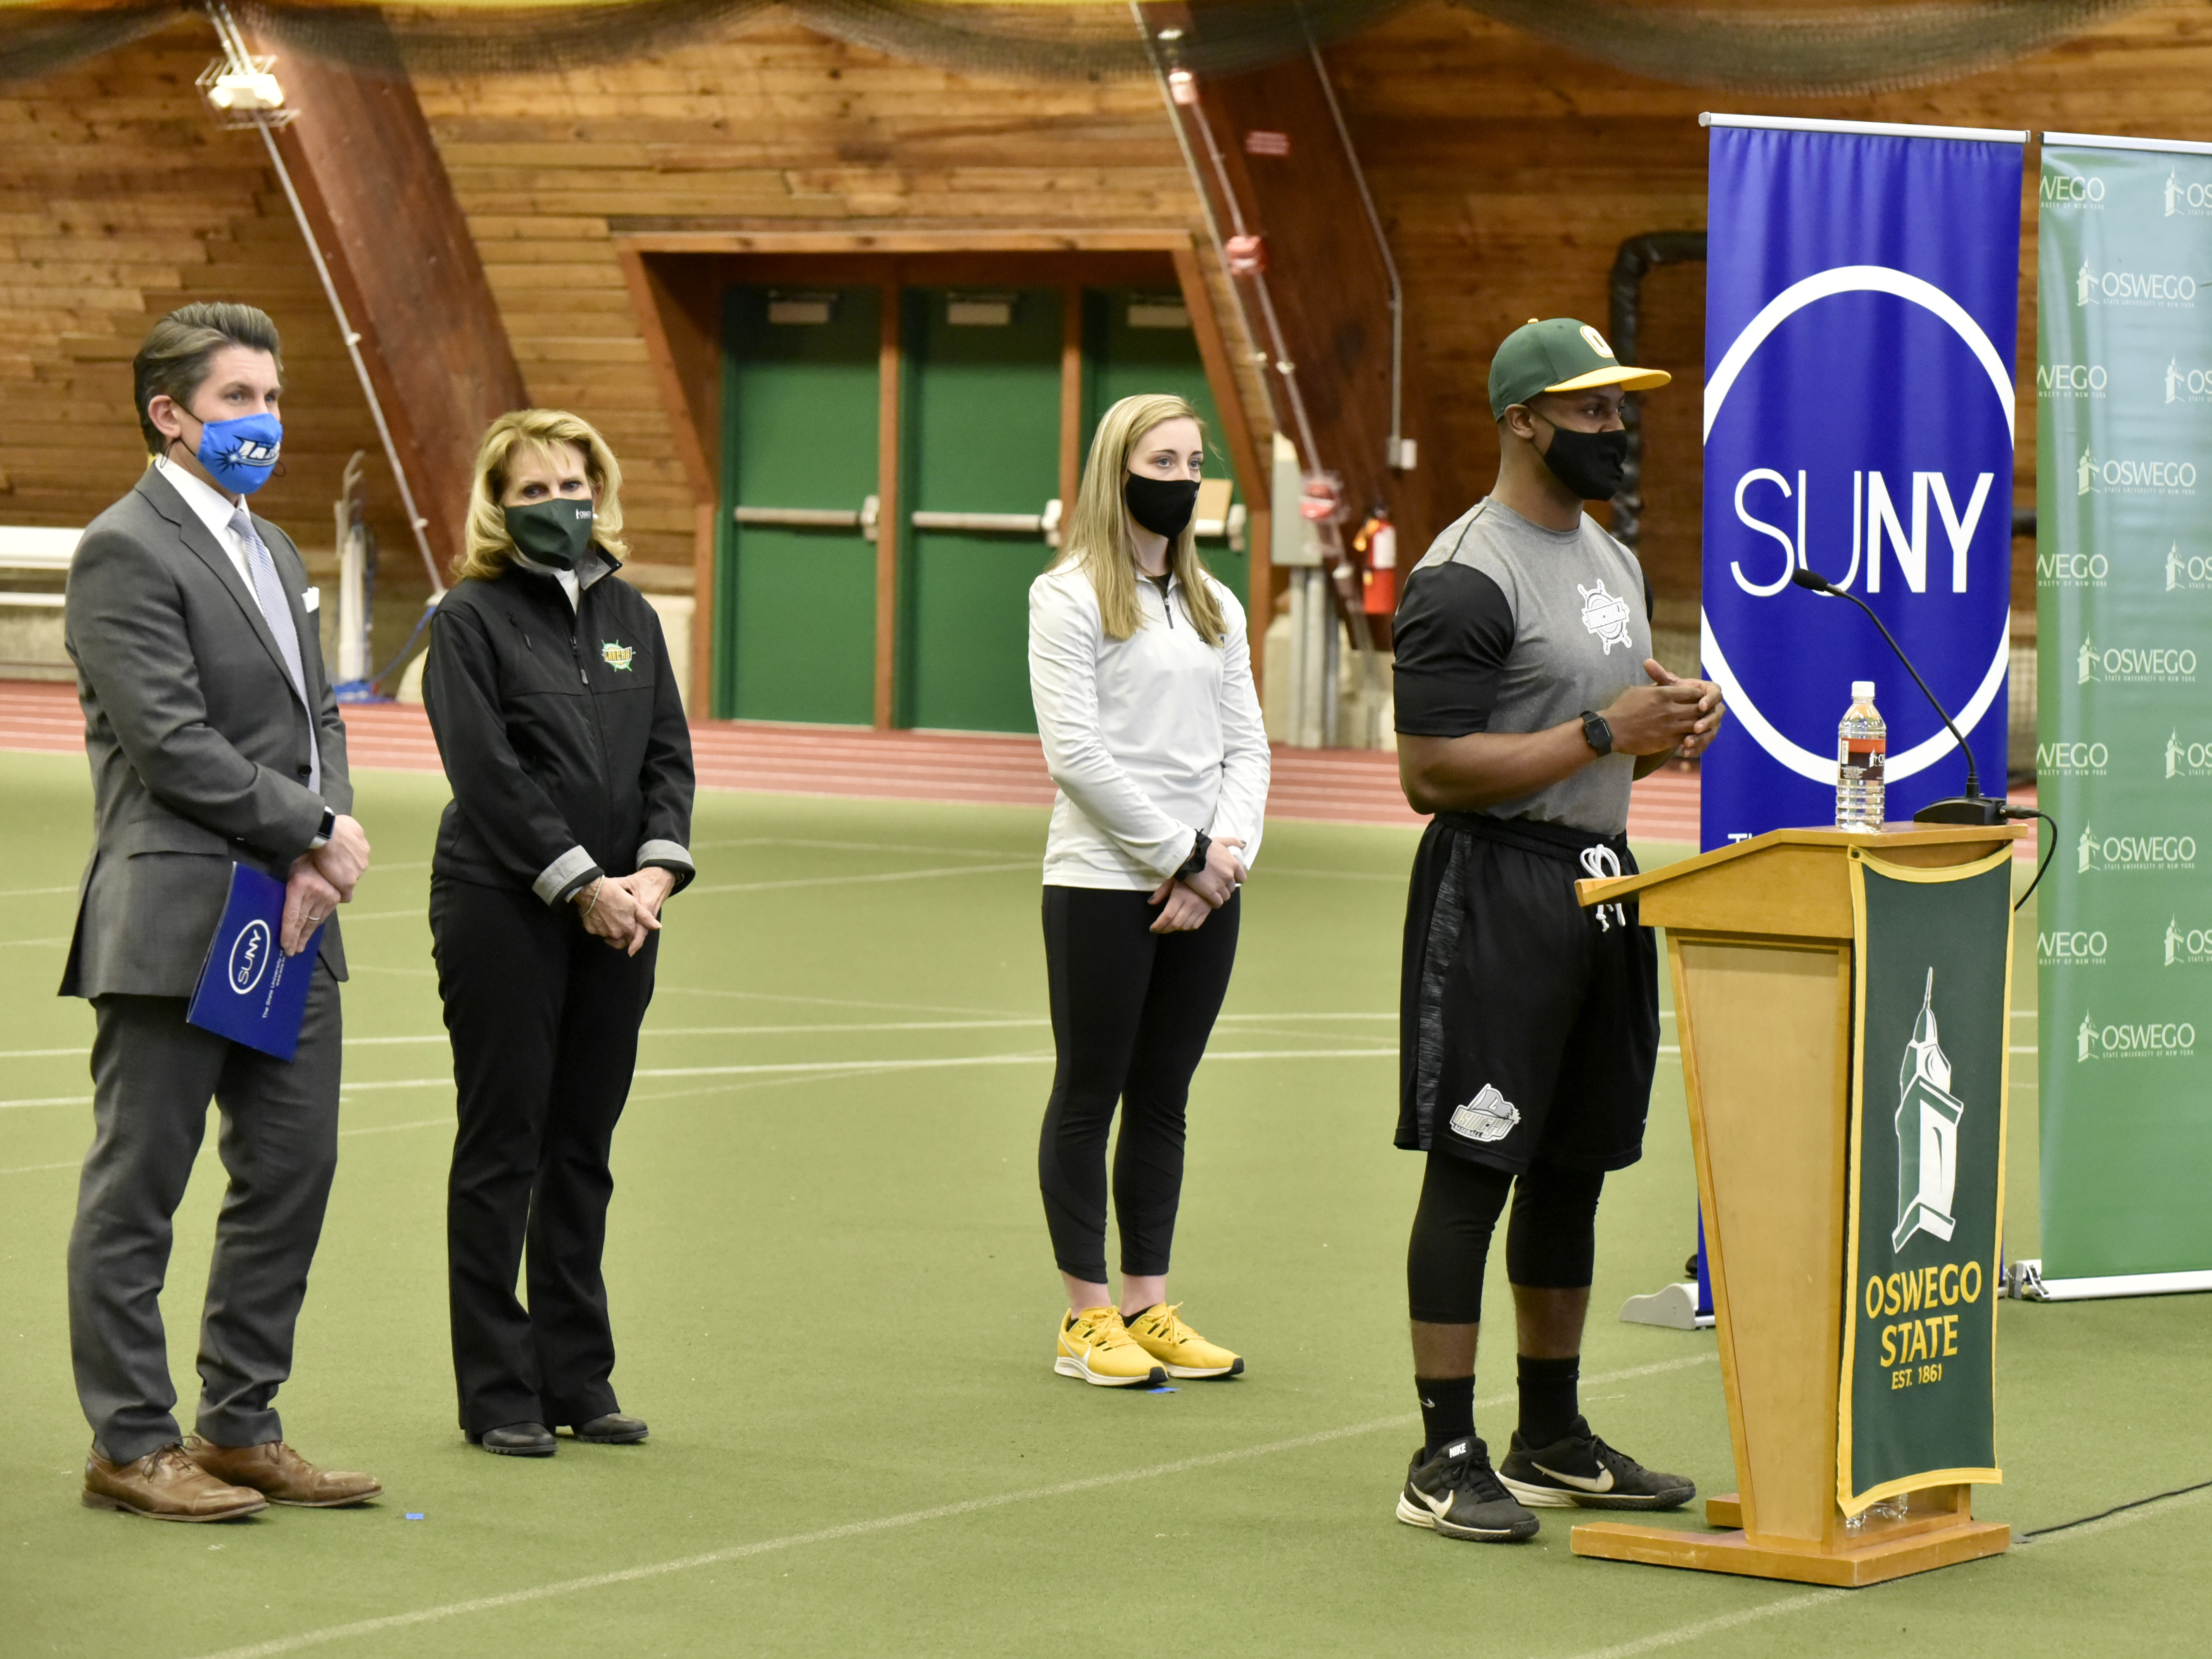 Myles Felton, an outfielder for the Laker baseball team, speaks at a Feb. 23 news conference where SUNY Chancellor Jim Malatras (left) announced that the SUNY Athletic Conference will resume play March 20 for spring sports